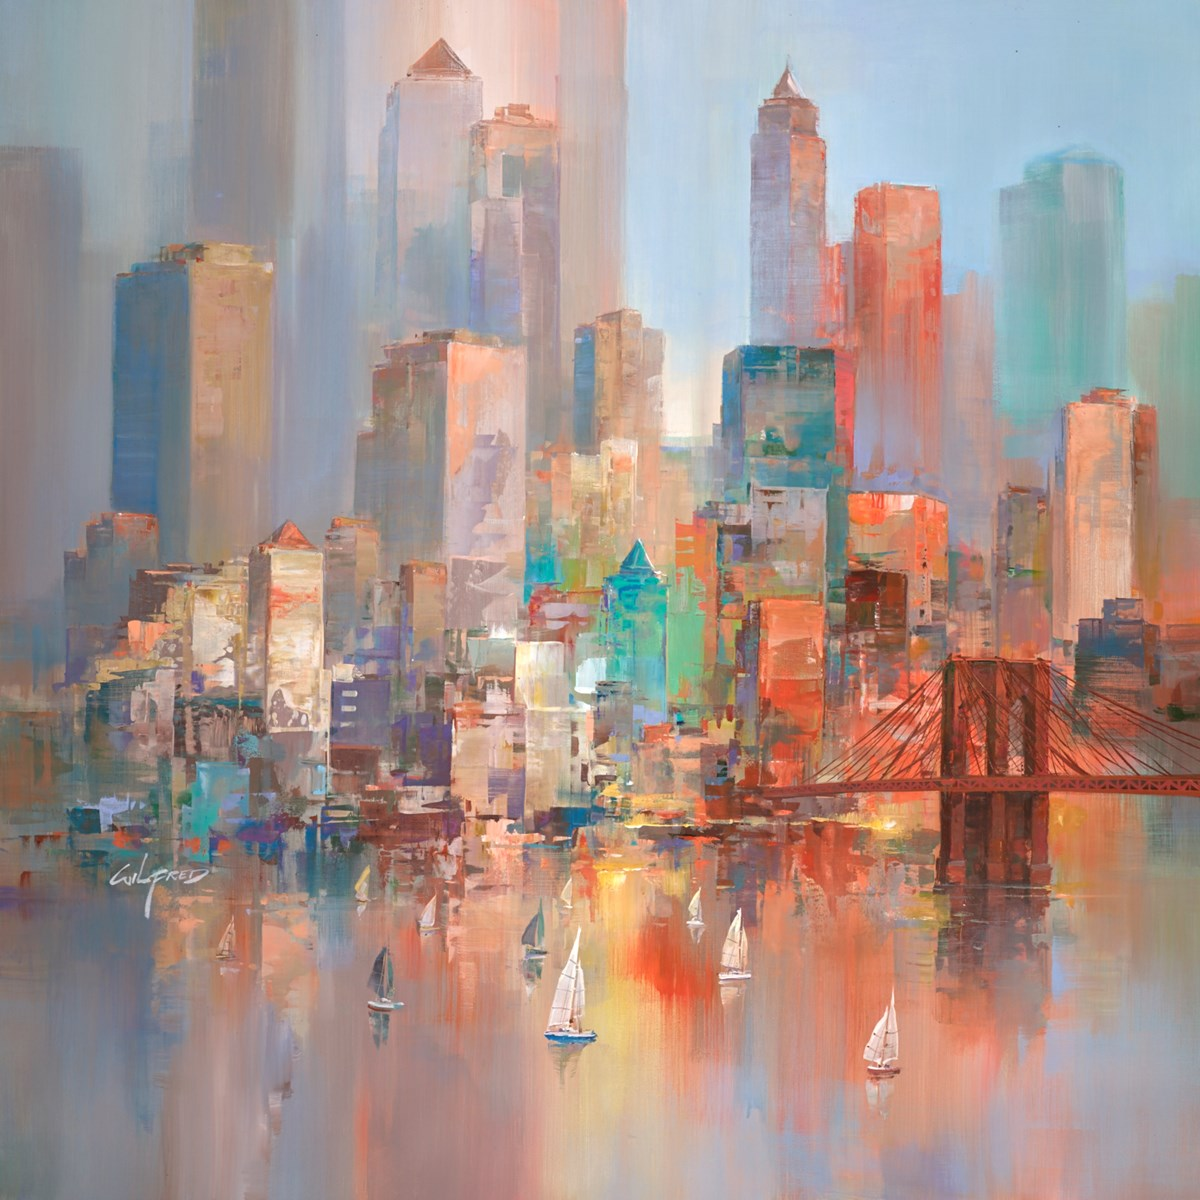 City Sundown IV by wilfred -  sized 38x38 inches. Available from Whitewall Galleries